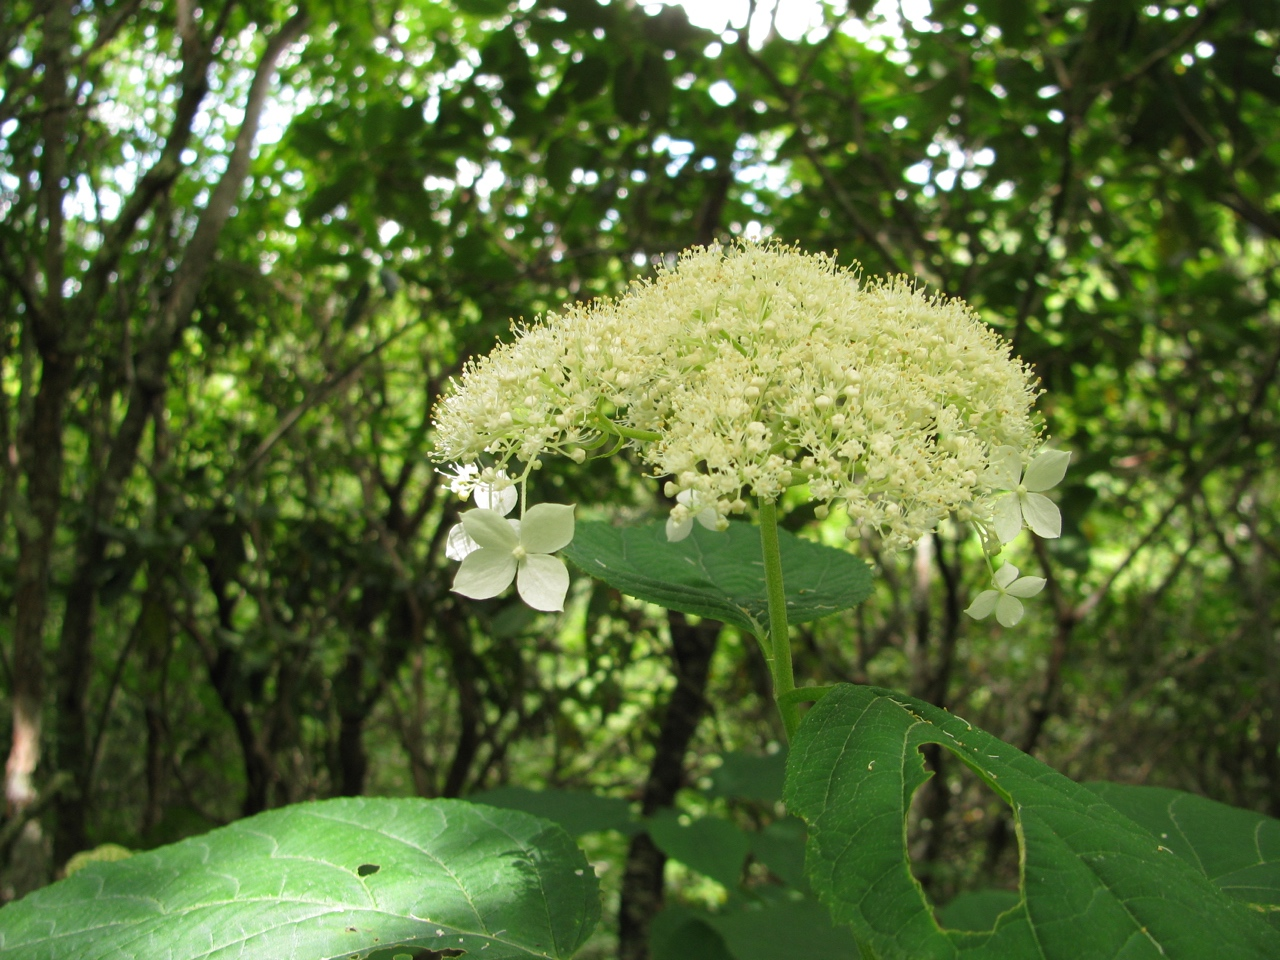 The Scientific Name is Hydrangea arborescens. You will likely hear them called Wild Hydrangea, Sevenbark. This picture shows the Close-up of inflorescence showing larger showy sterile flowers along the margins of the corymb of Hydrangea arborescens